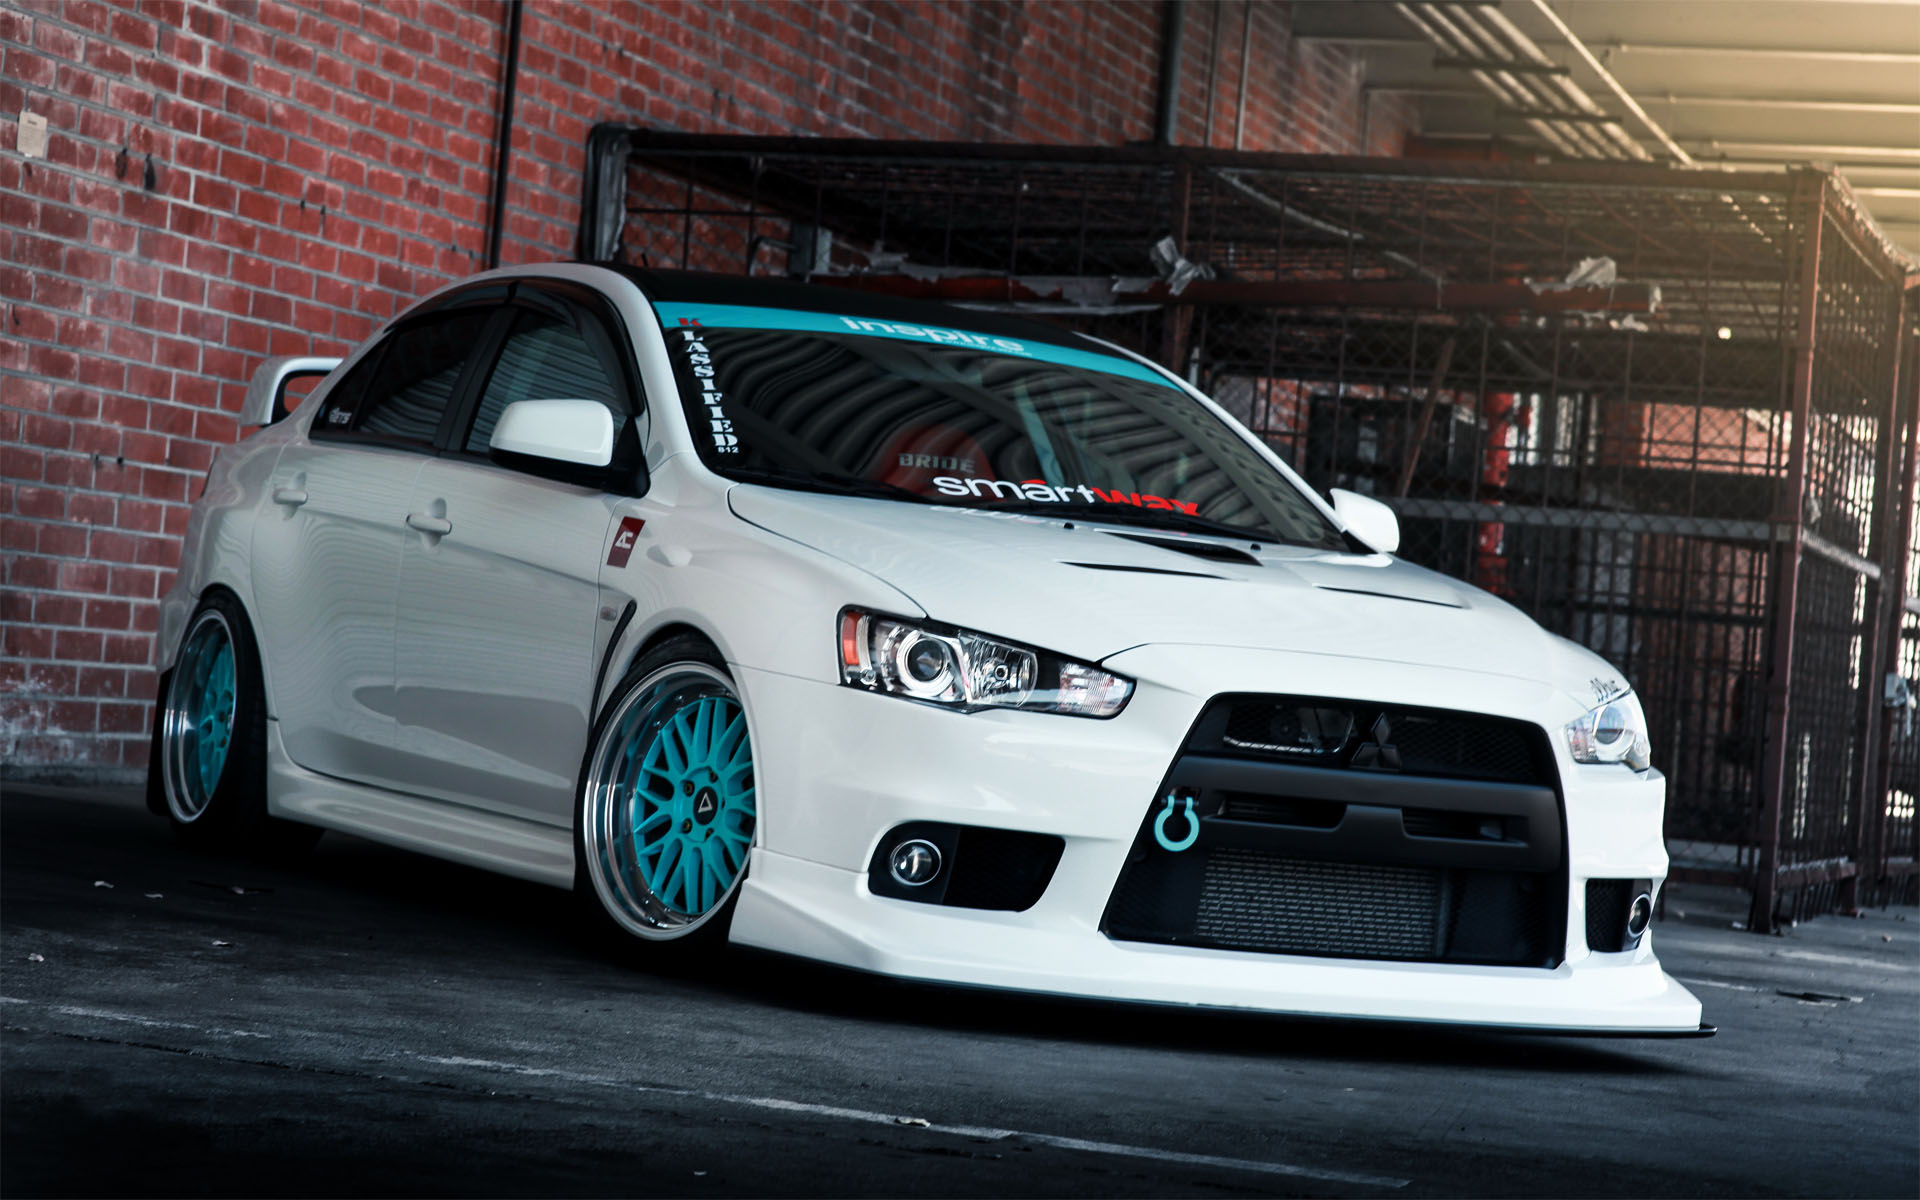 mitsubishi lancer evo x hd wallpaper hd latest wallpapers. Black Bedroom Furniture Sets. Home Design Ideas